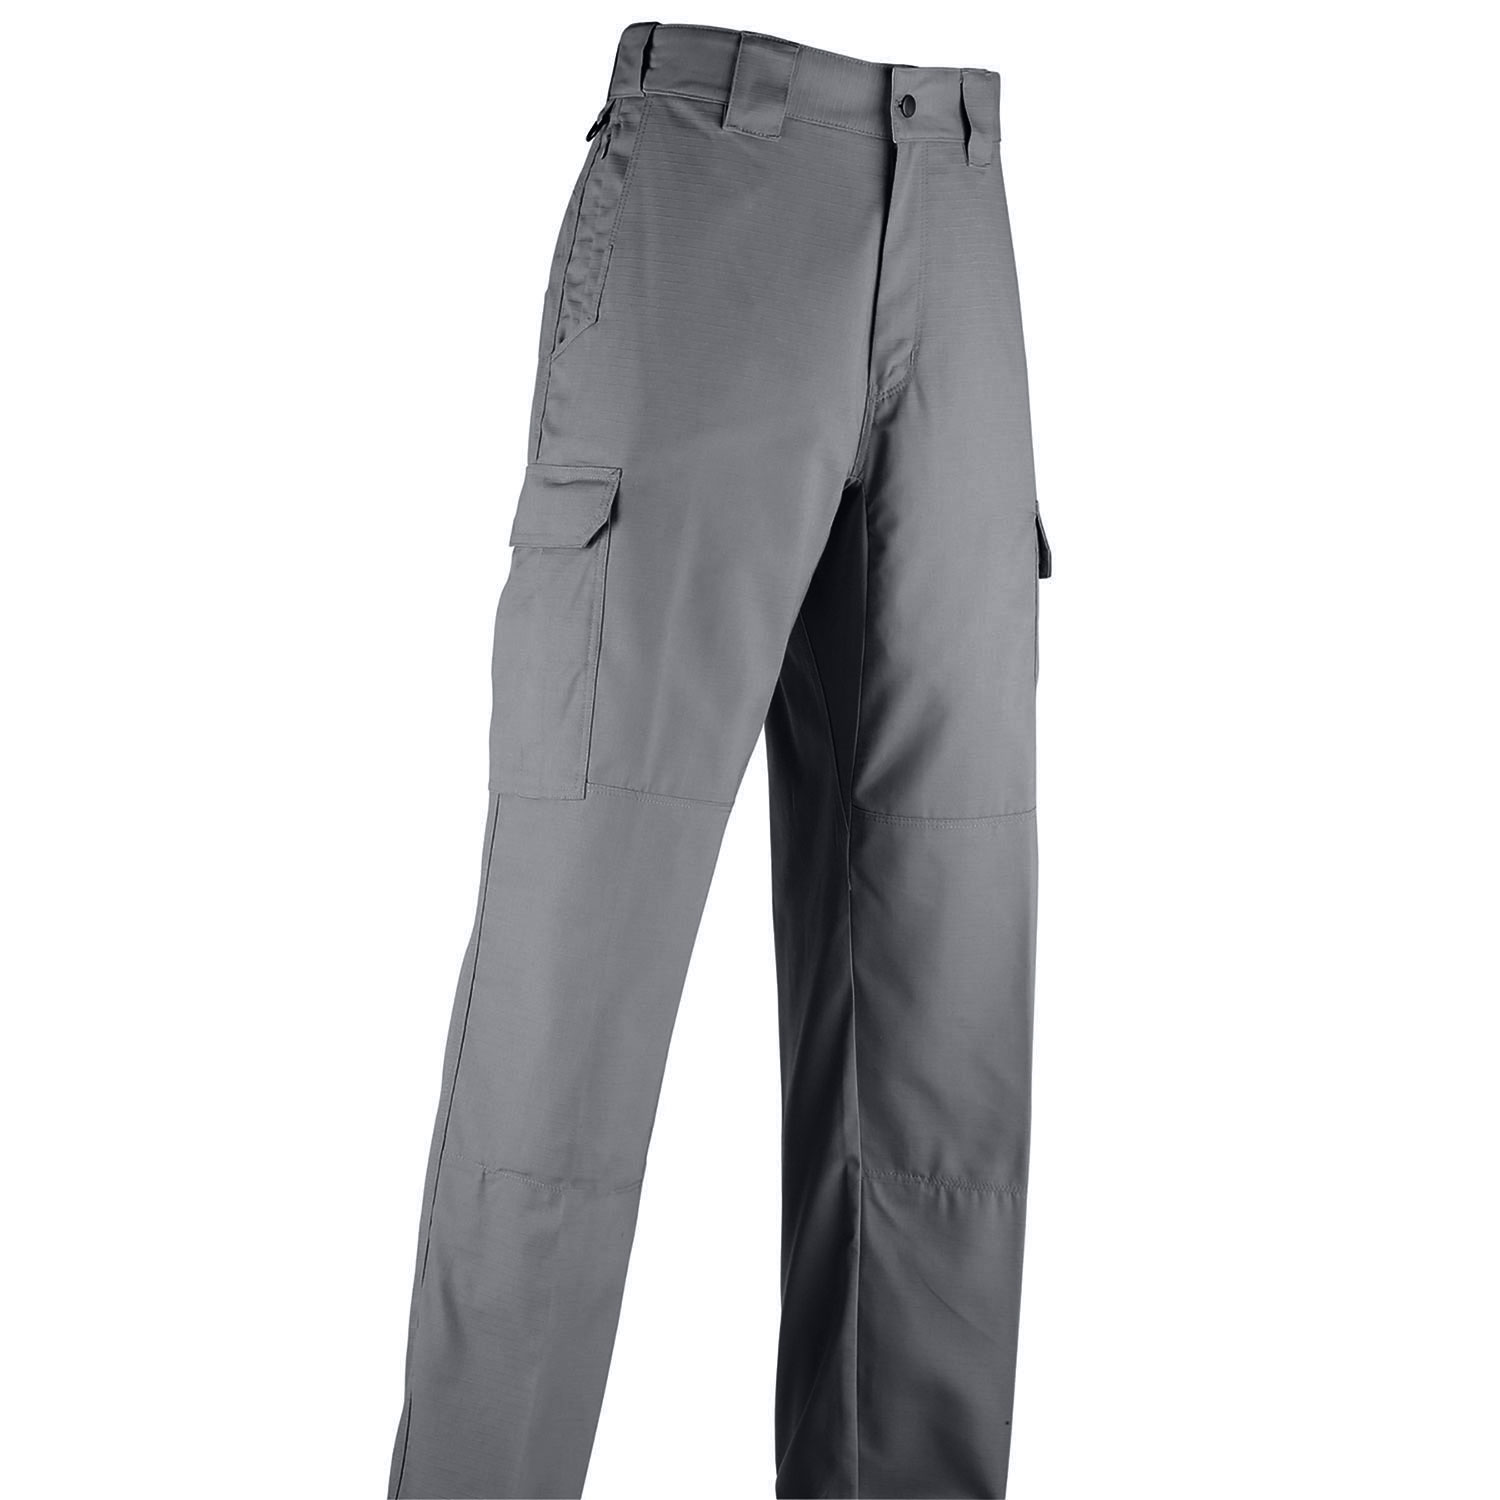 Galls Women's G-TAC Tactical Pants